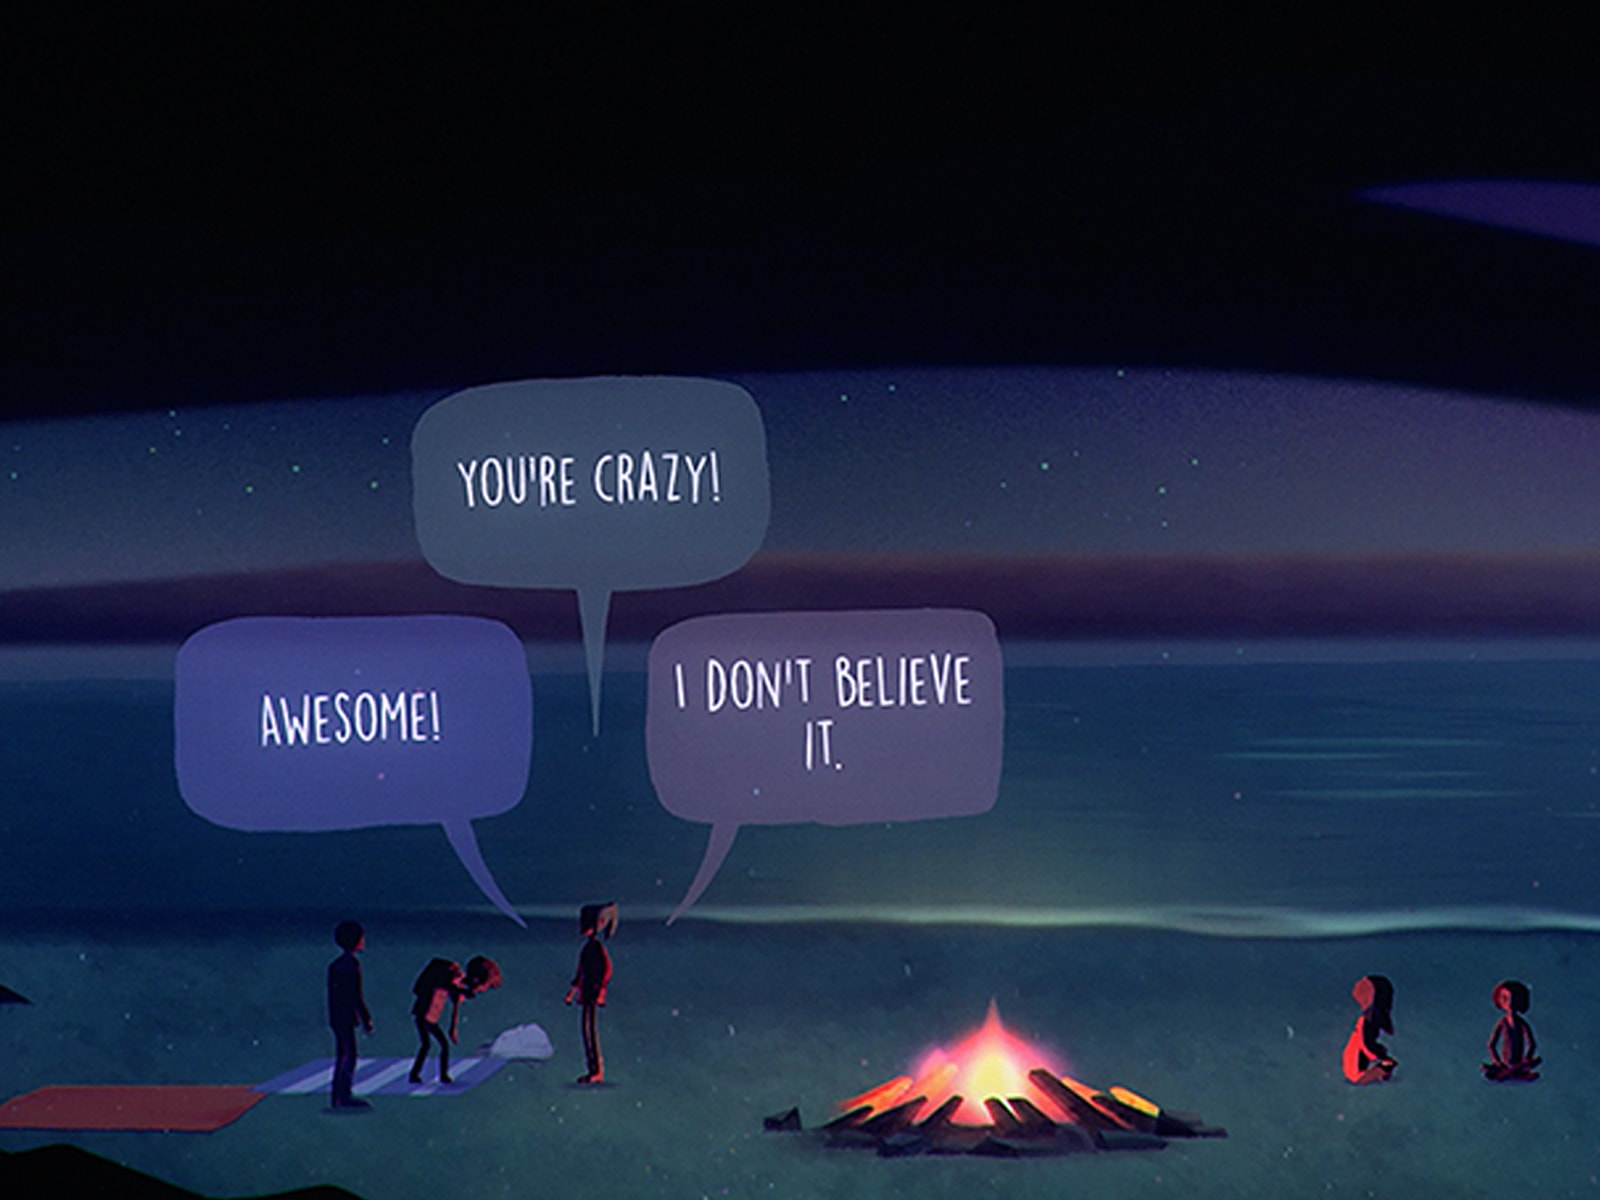 """Screenshot from Oxenfree of teenaged characters saying """"Awesome!"""", """"You're crazy!"""", """"I don't believe it."""" at a campfire by a lake"""